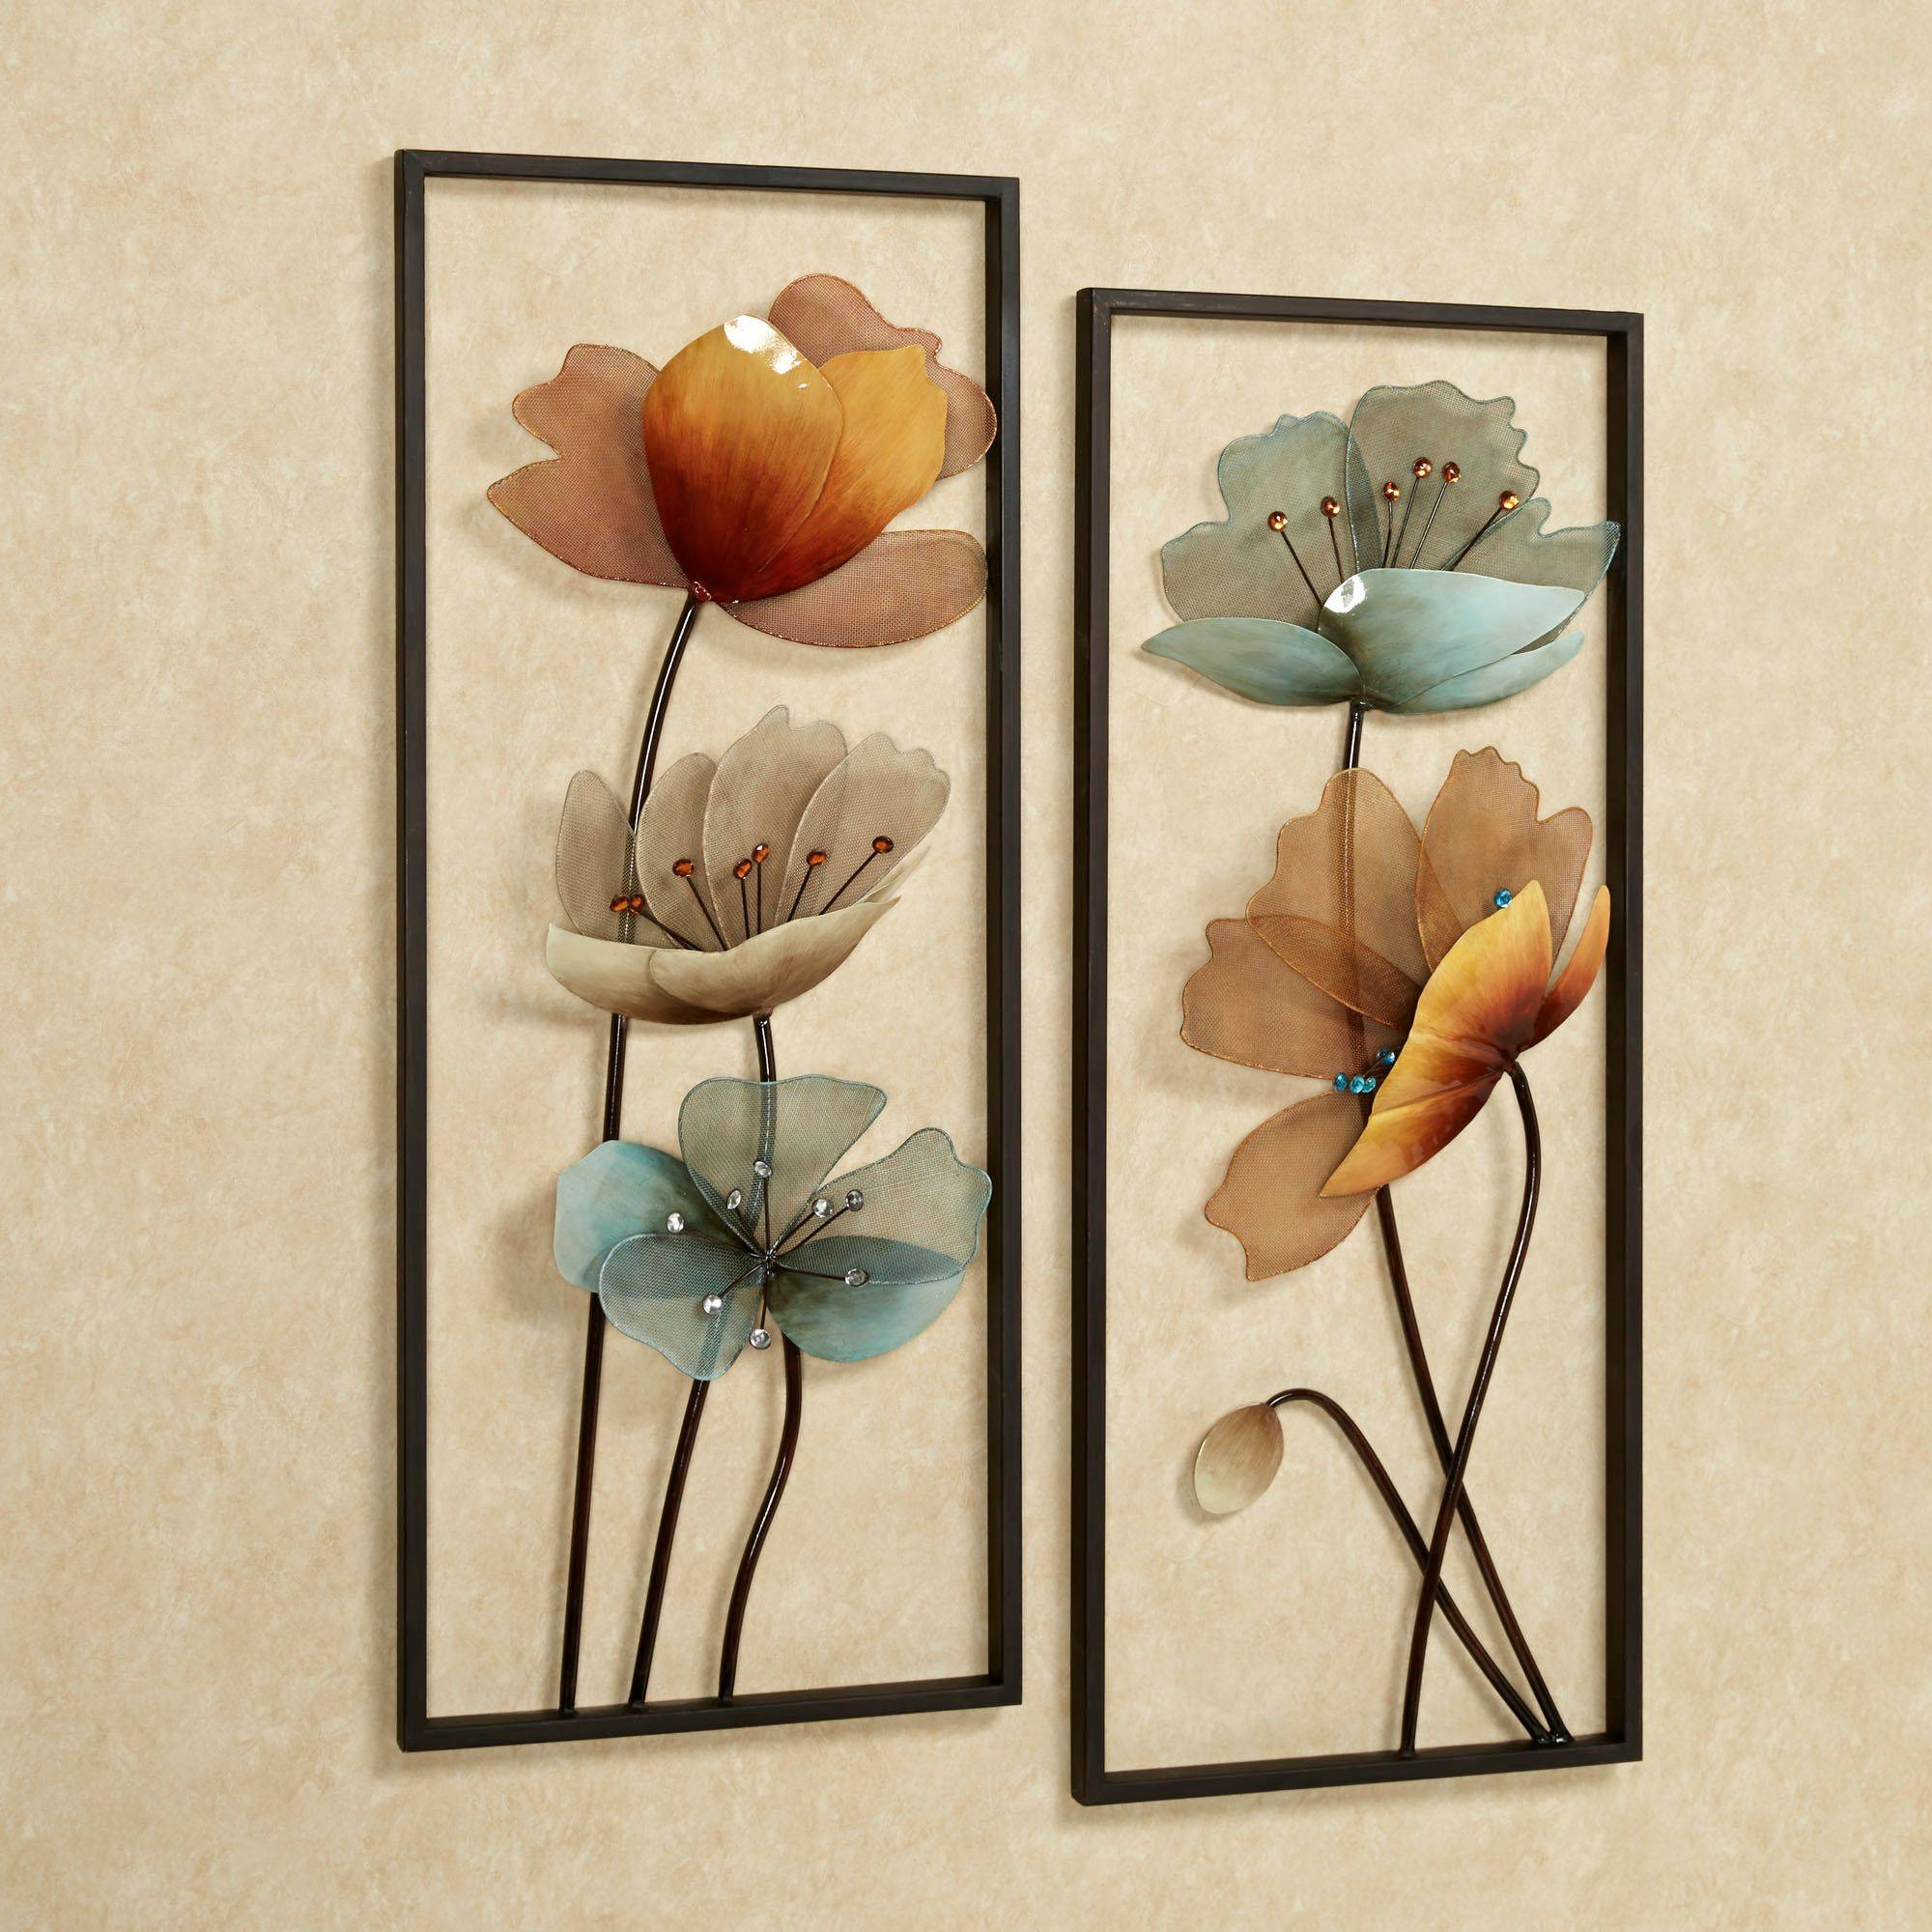 Abstract Metal Wall Art Cheap : Unique Material Decorative Metal Intended For Latest Brown Metal Wall Art (View 3 of 20)